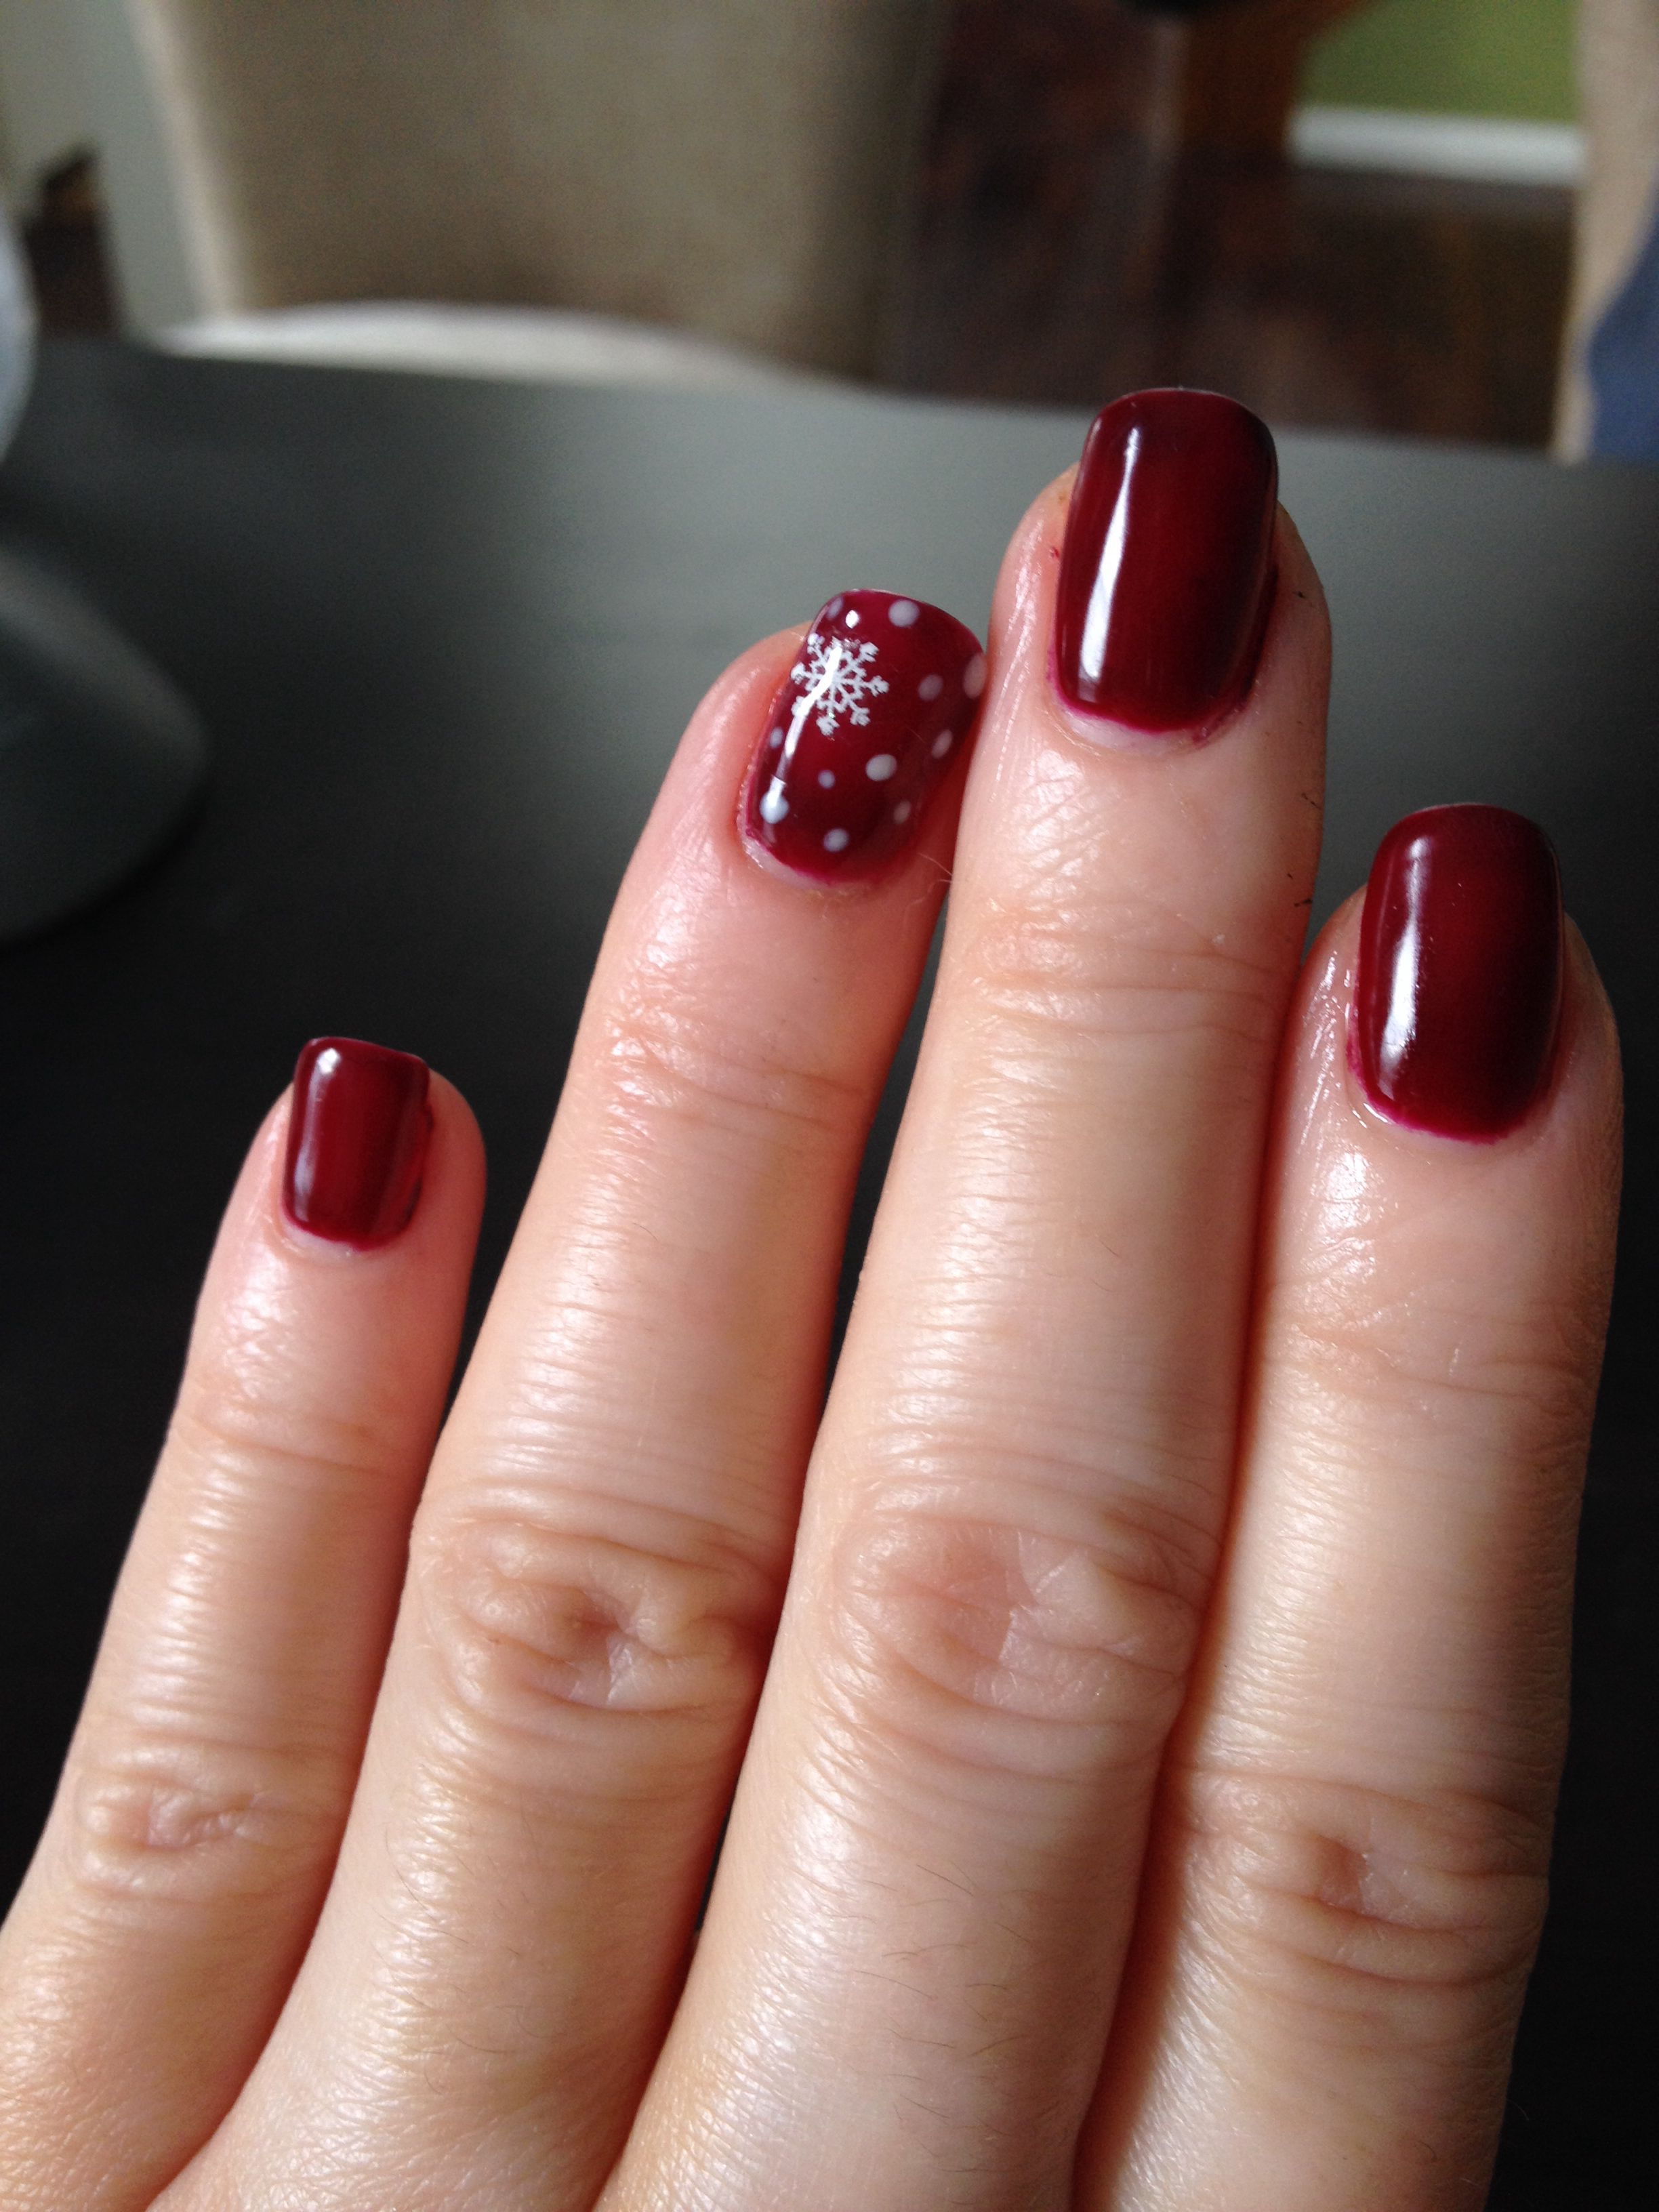 Christmas Nails Shellac Been Doing For 12 Years This Is My Favorite